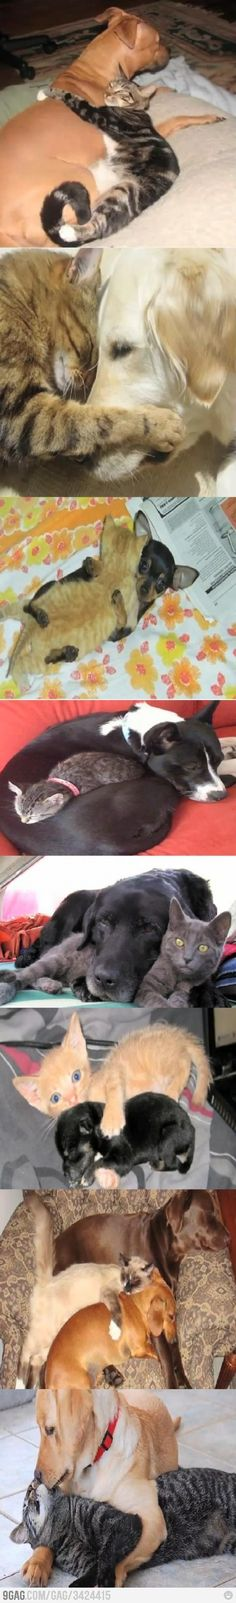 Cats and dogs can be friends. Especially if you raise them together.